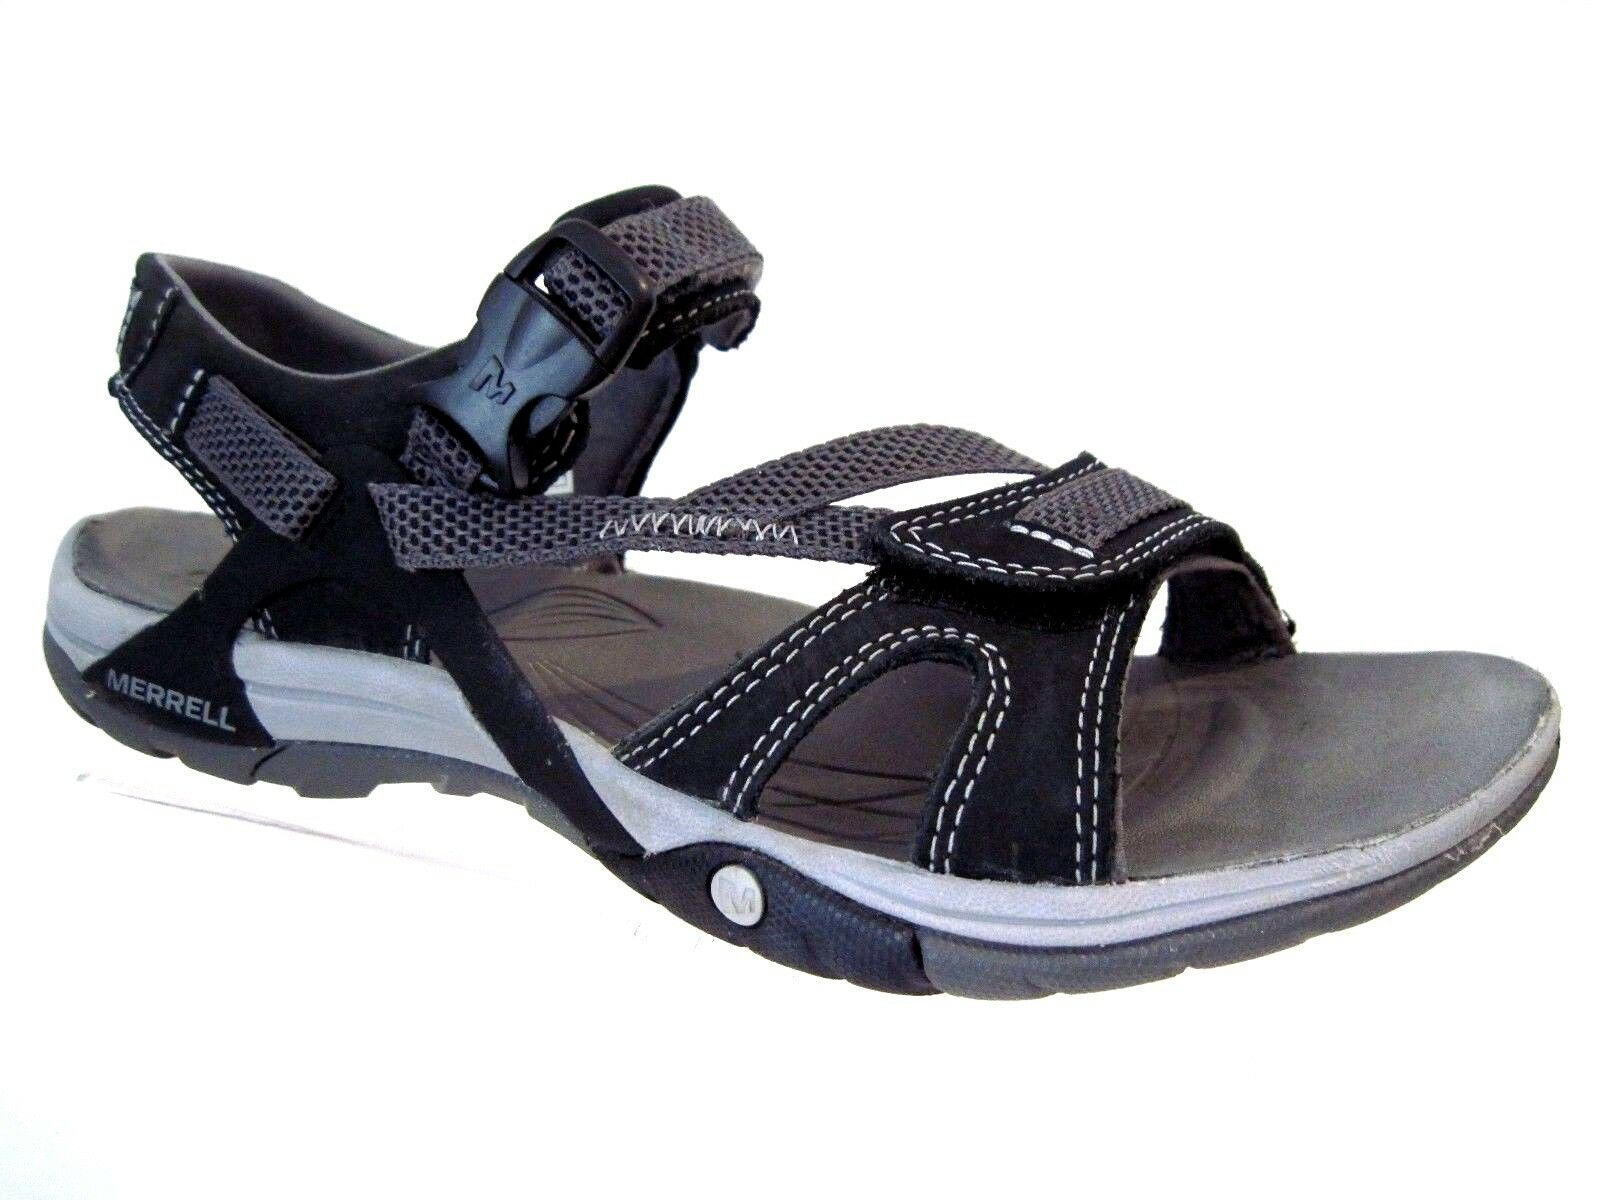 MERRELL Out.Perform nero AZURA STRAP Comfort Comfort Comfort Sport Sandal Dimensione 7 a6fc6b